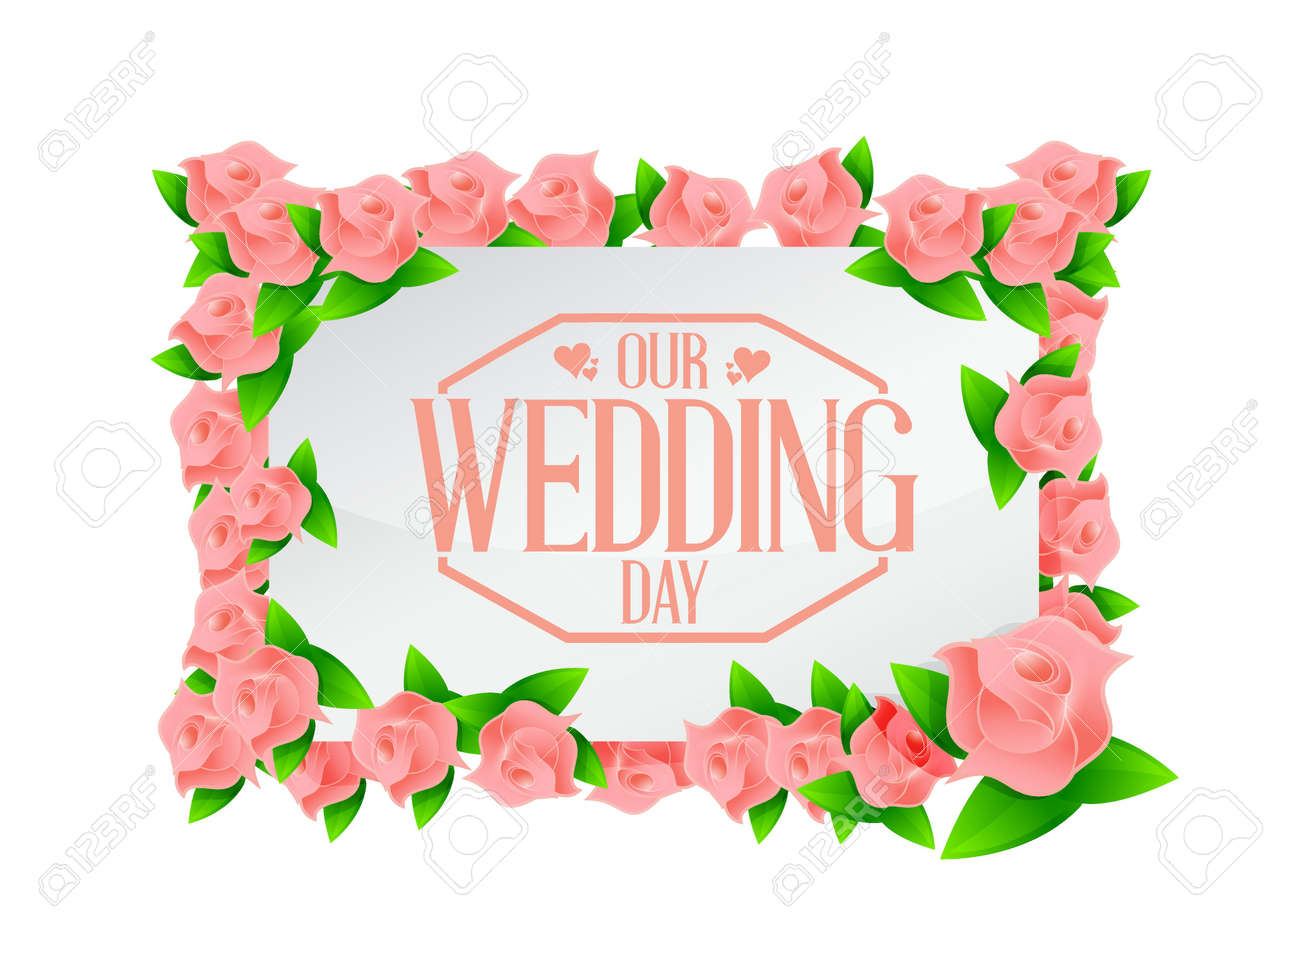 Our wedding day pink flowers board illustration design royalty free imagens our wedding day pink flowers board illustration design junglespirit Image collections